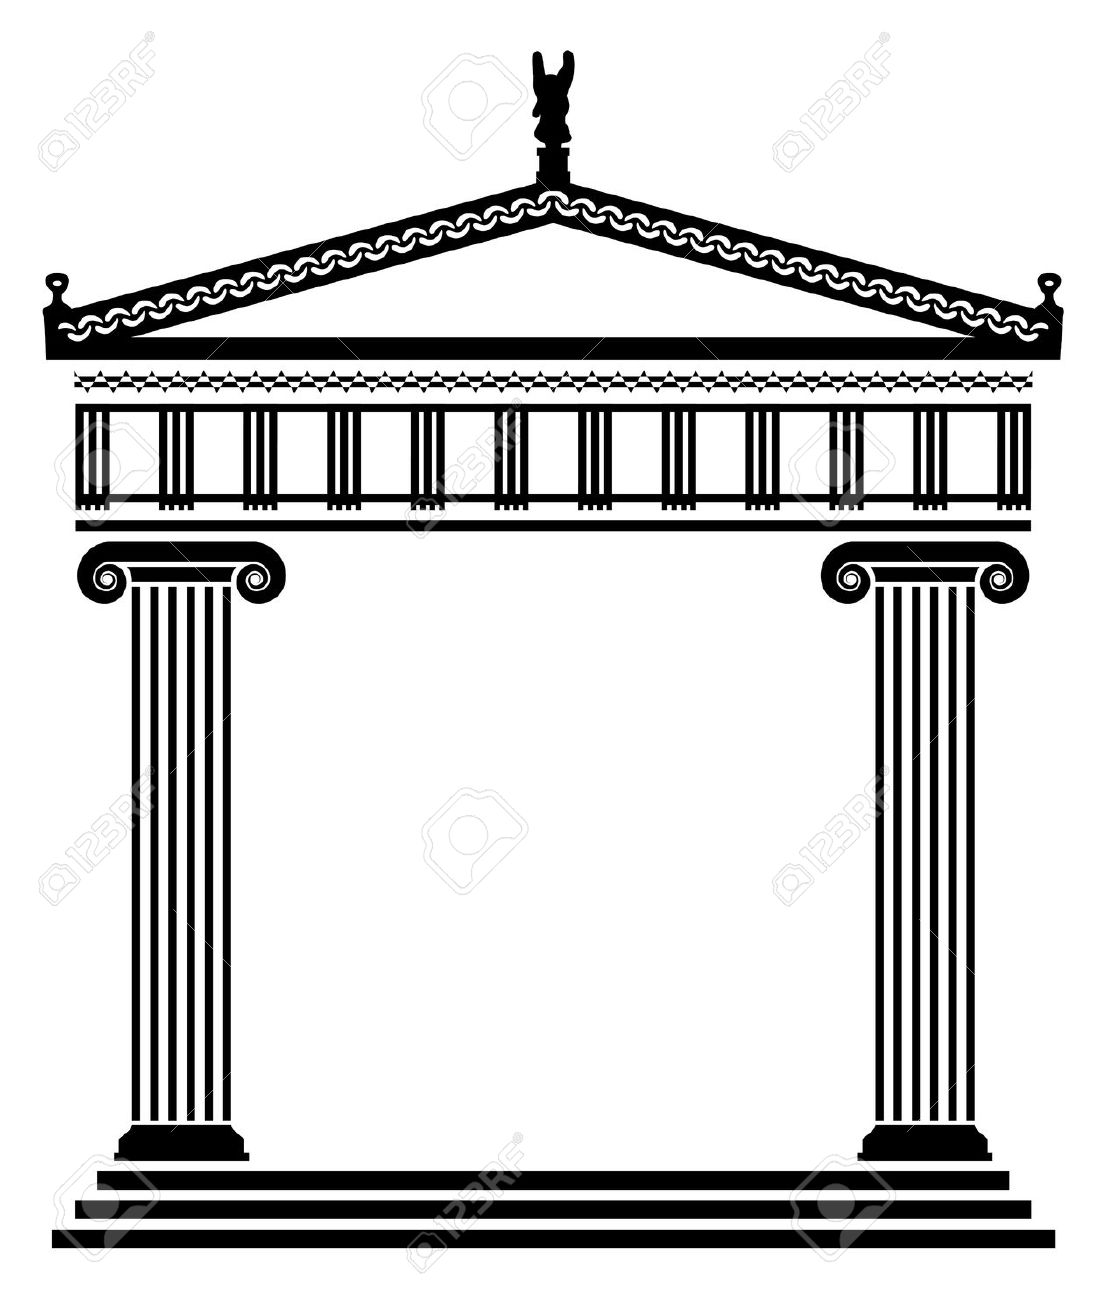 Architecture clipart greek column Art Greek Greek Art architecture